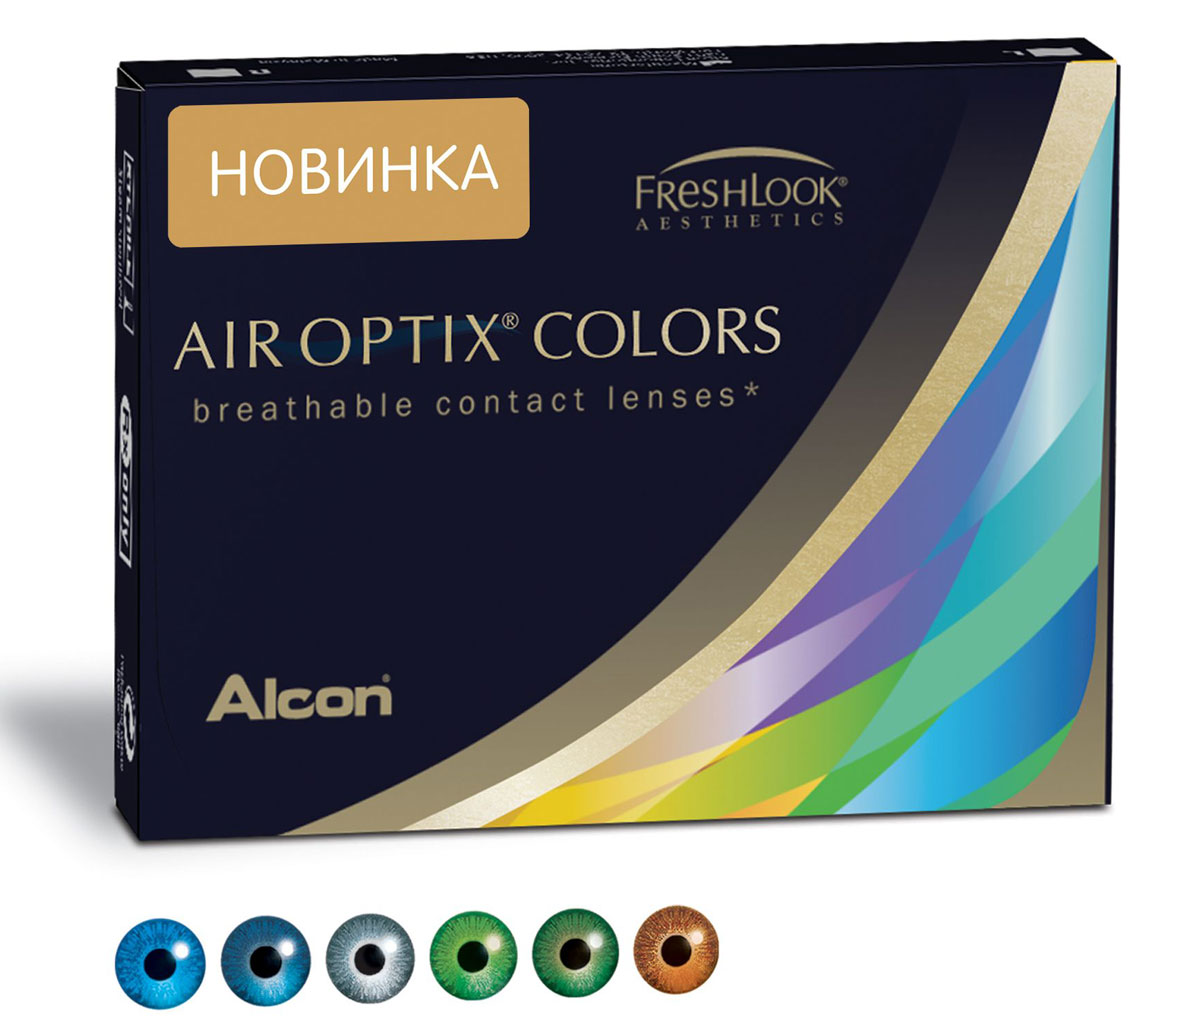 Аlcon контактные линзы Air Optix Colors 2 шт -1.75 Green